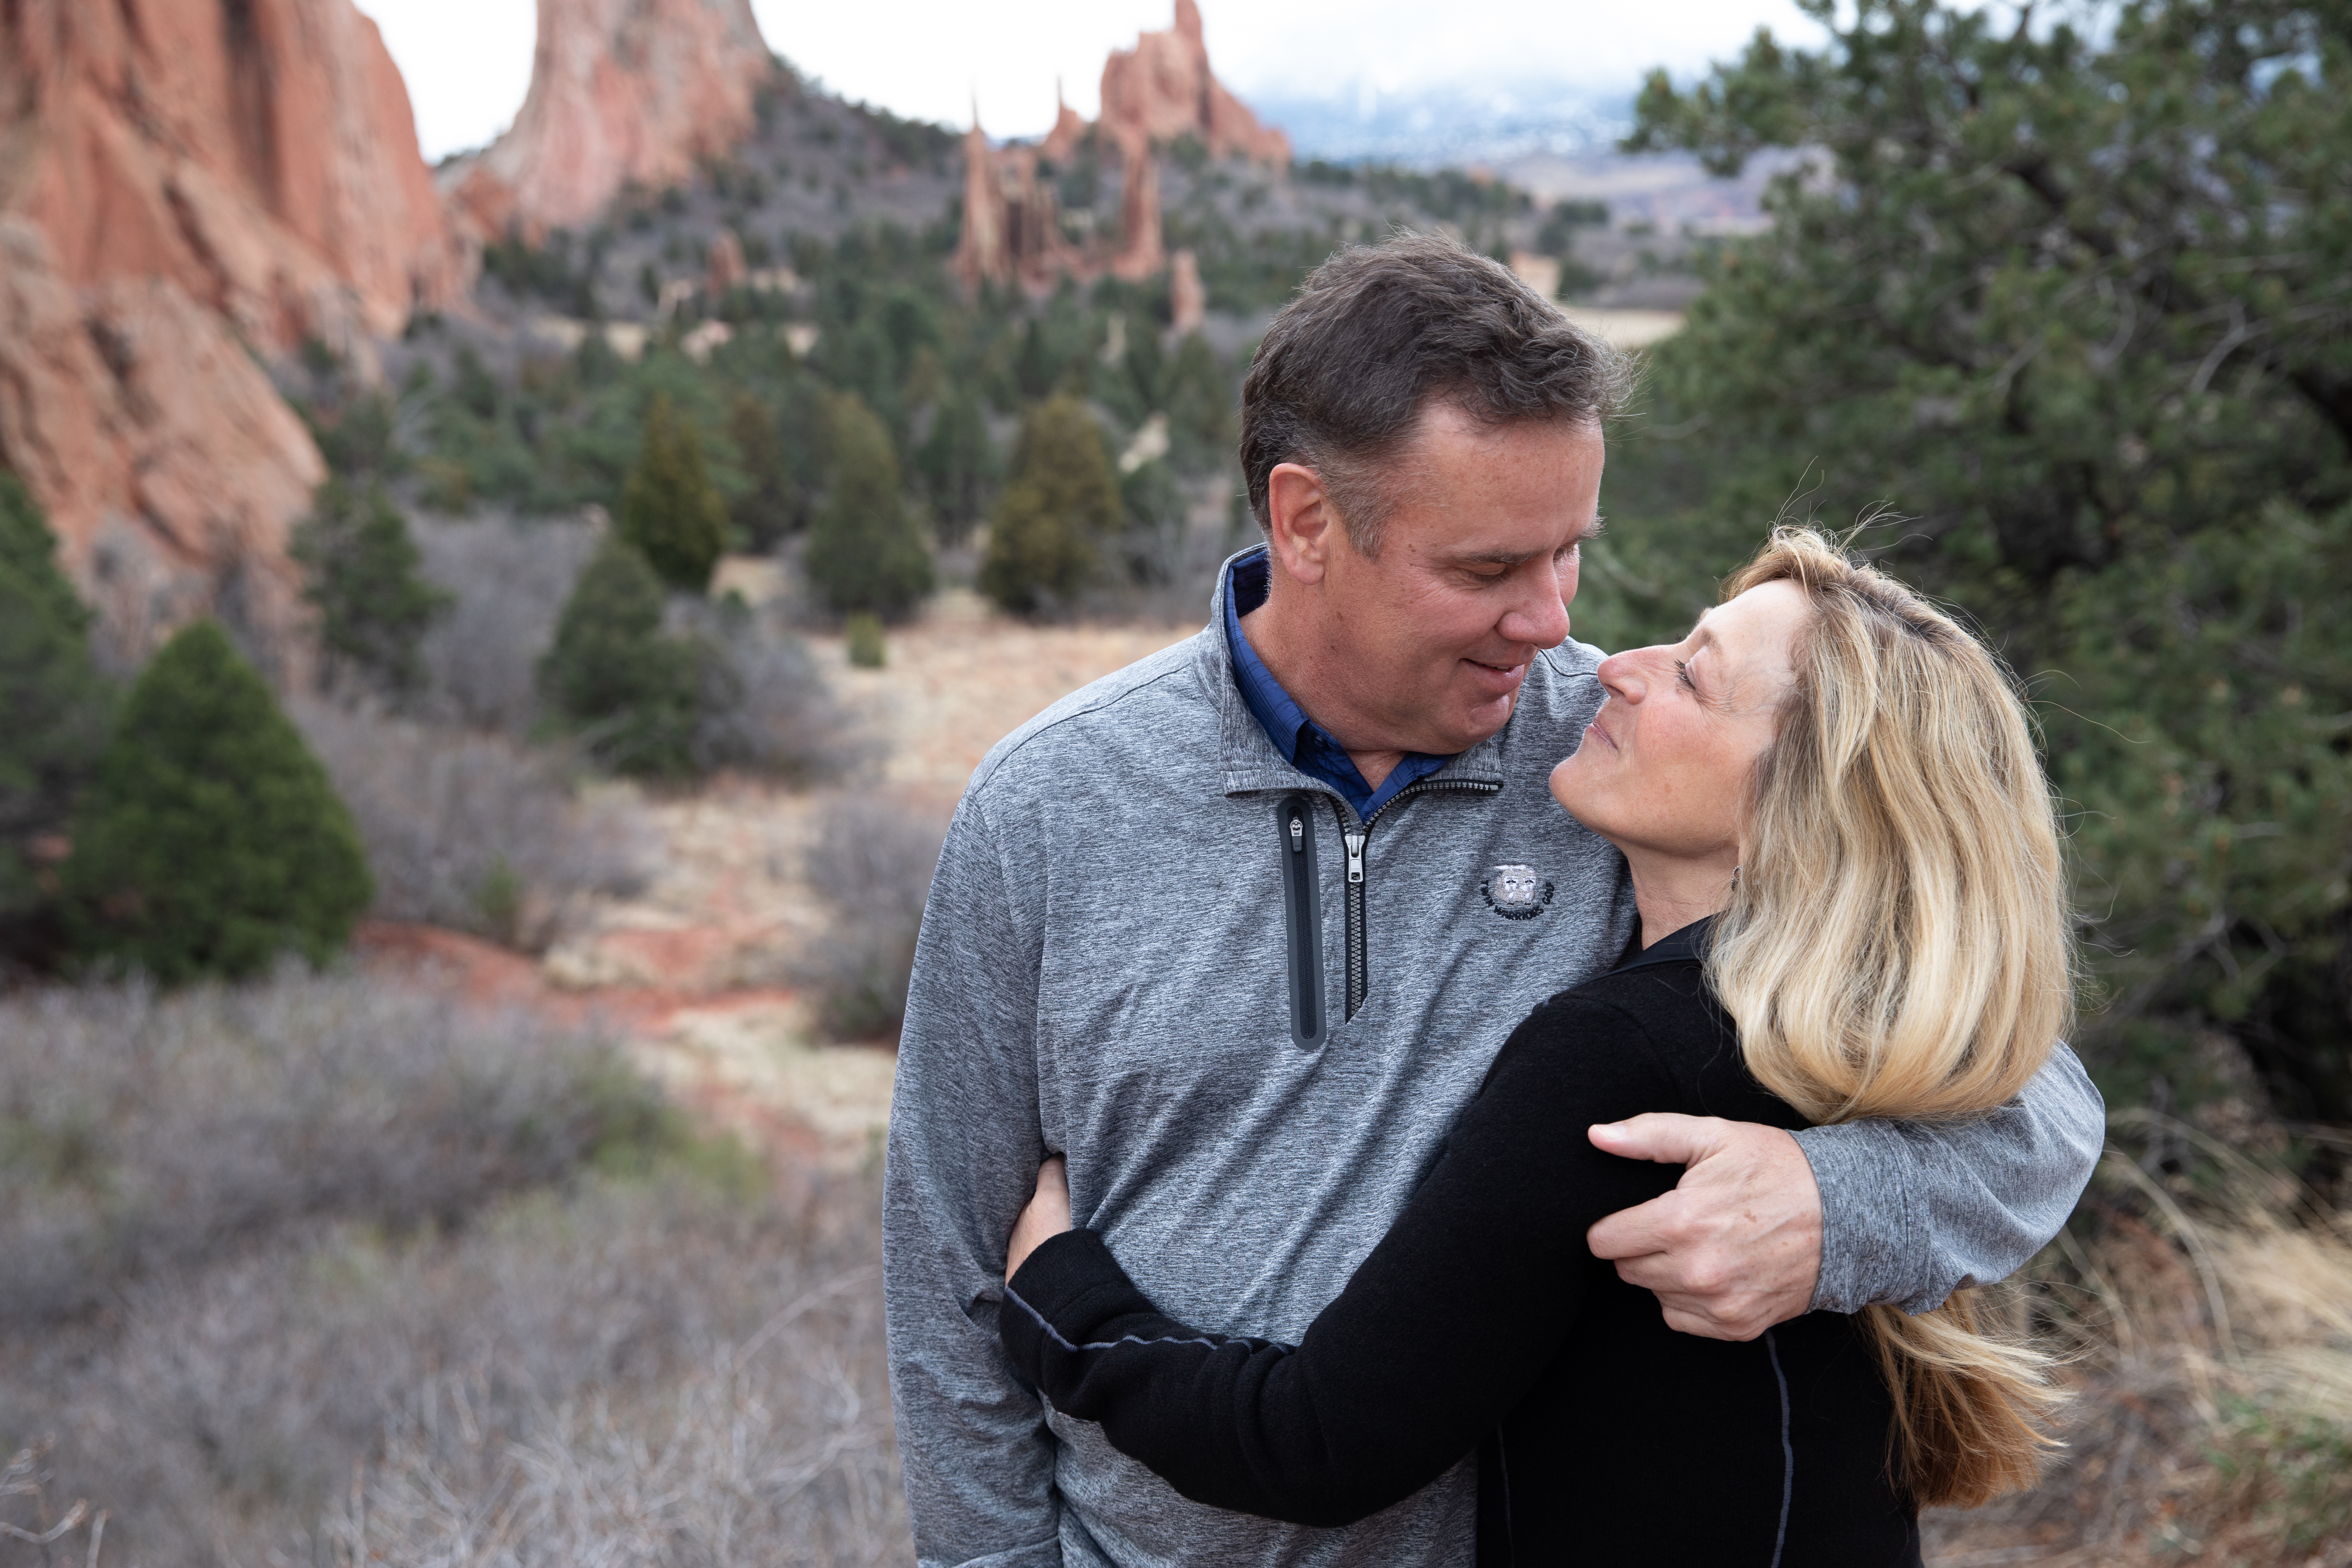 Portrait session picture of Shelley and Dan at the Garden of Gods with the rocks in background